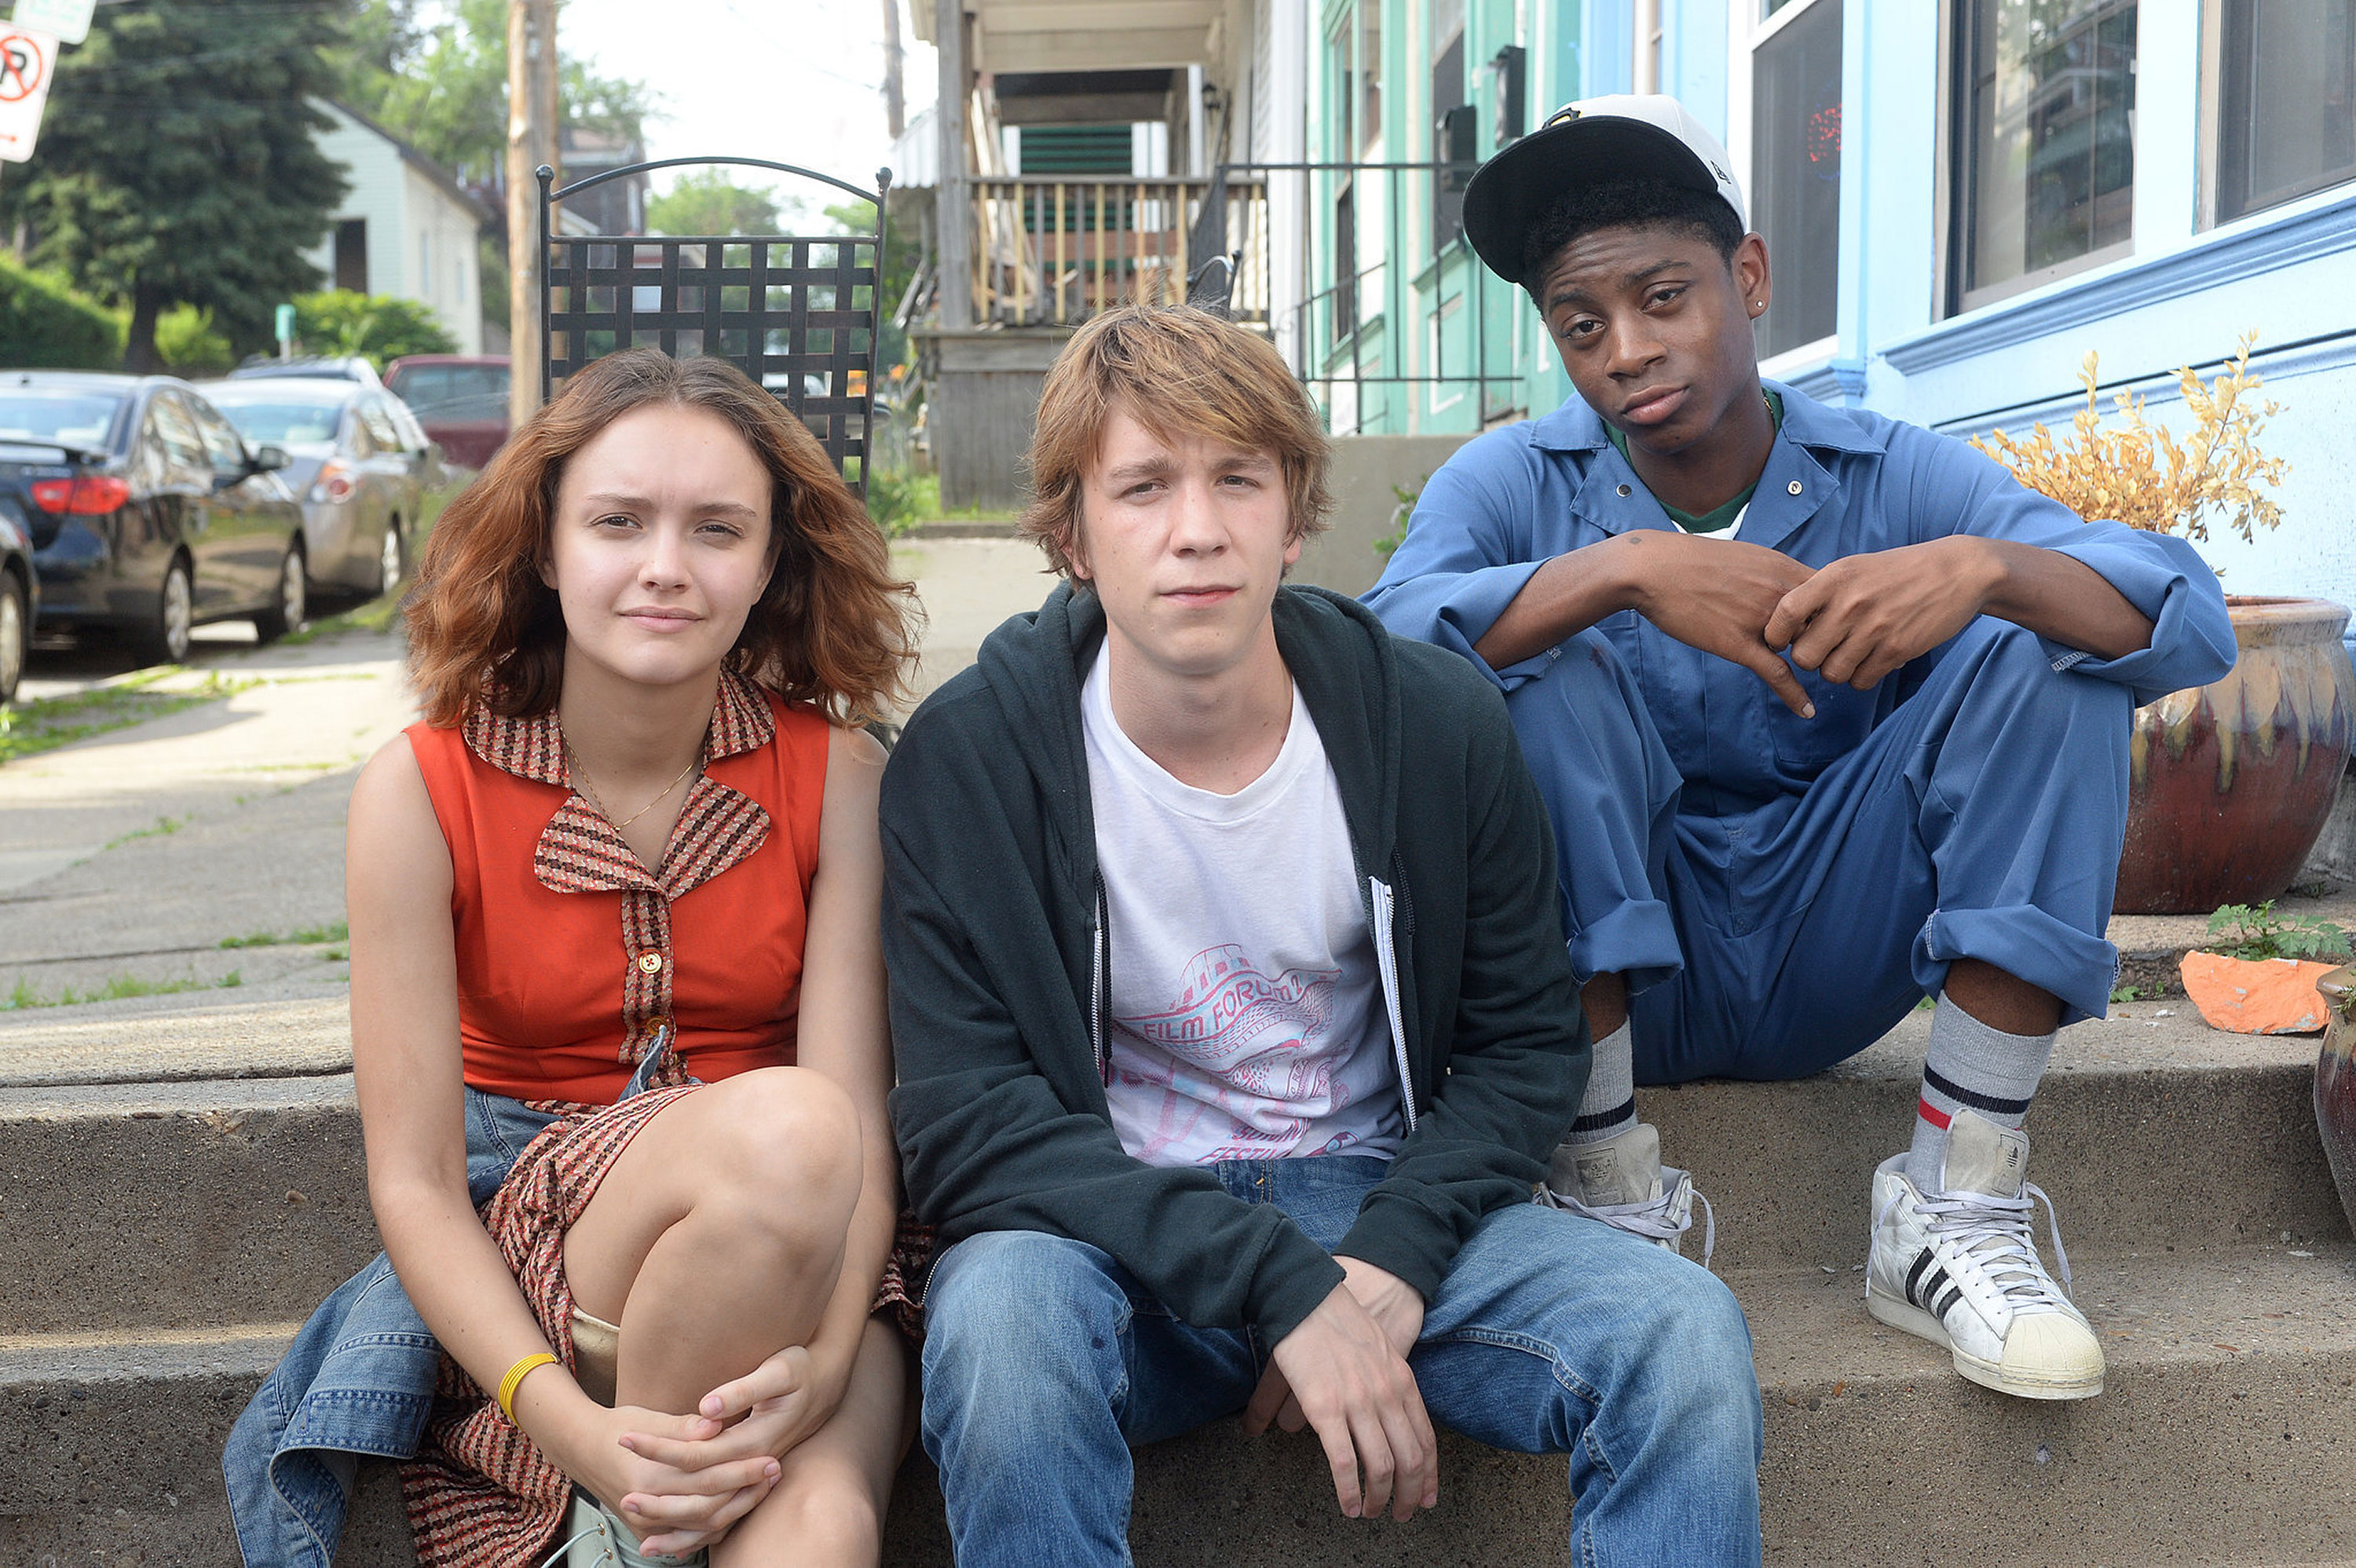 Olivia Cooke, Thomas Mann, and RJ Cyler star in this story about coming to terms with oneself and finding one's place in the world.  (credit: Courtesy of Wikimedia Commons)